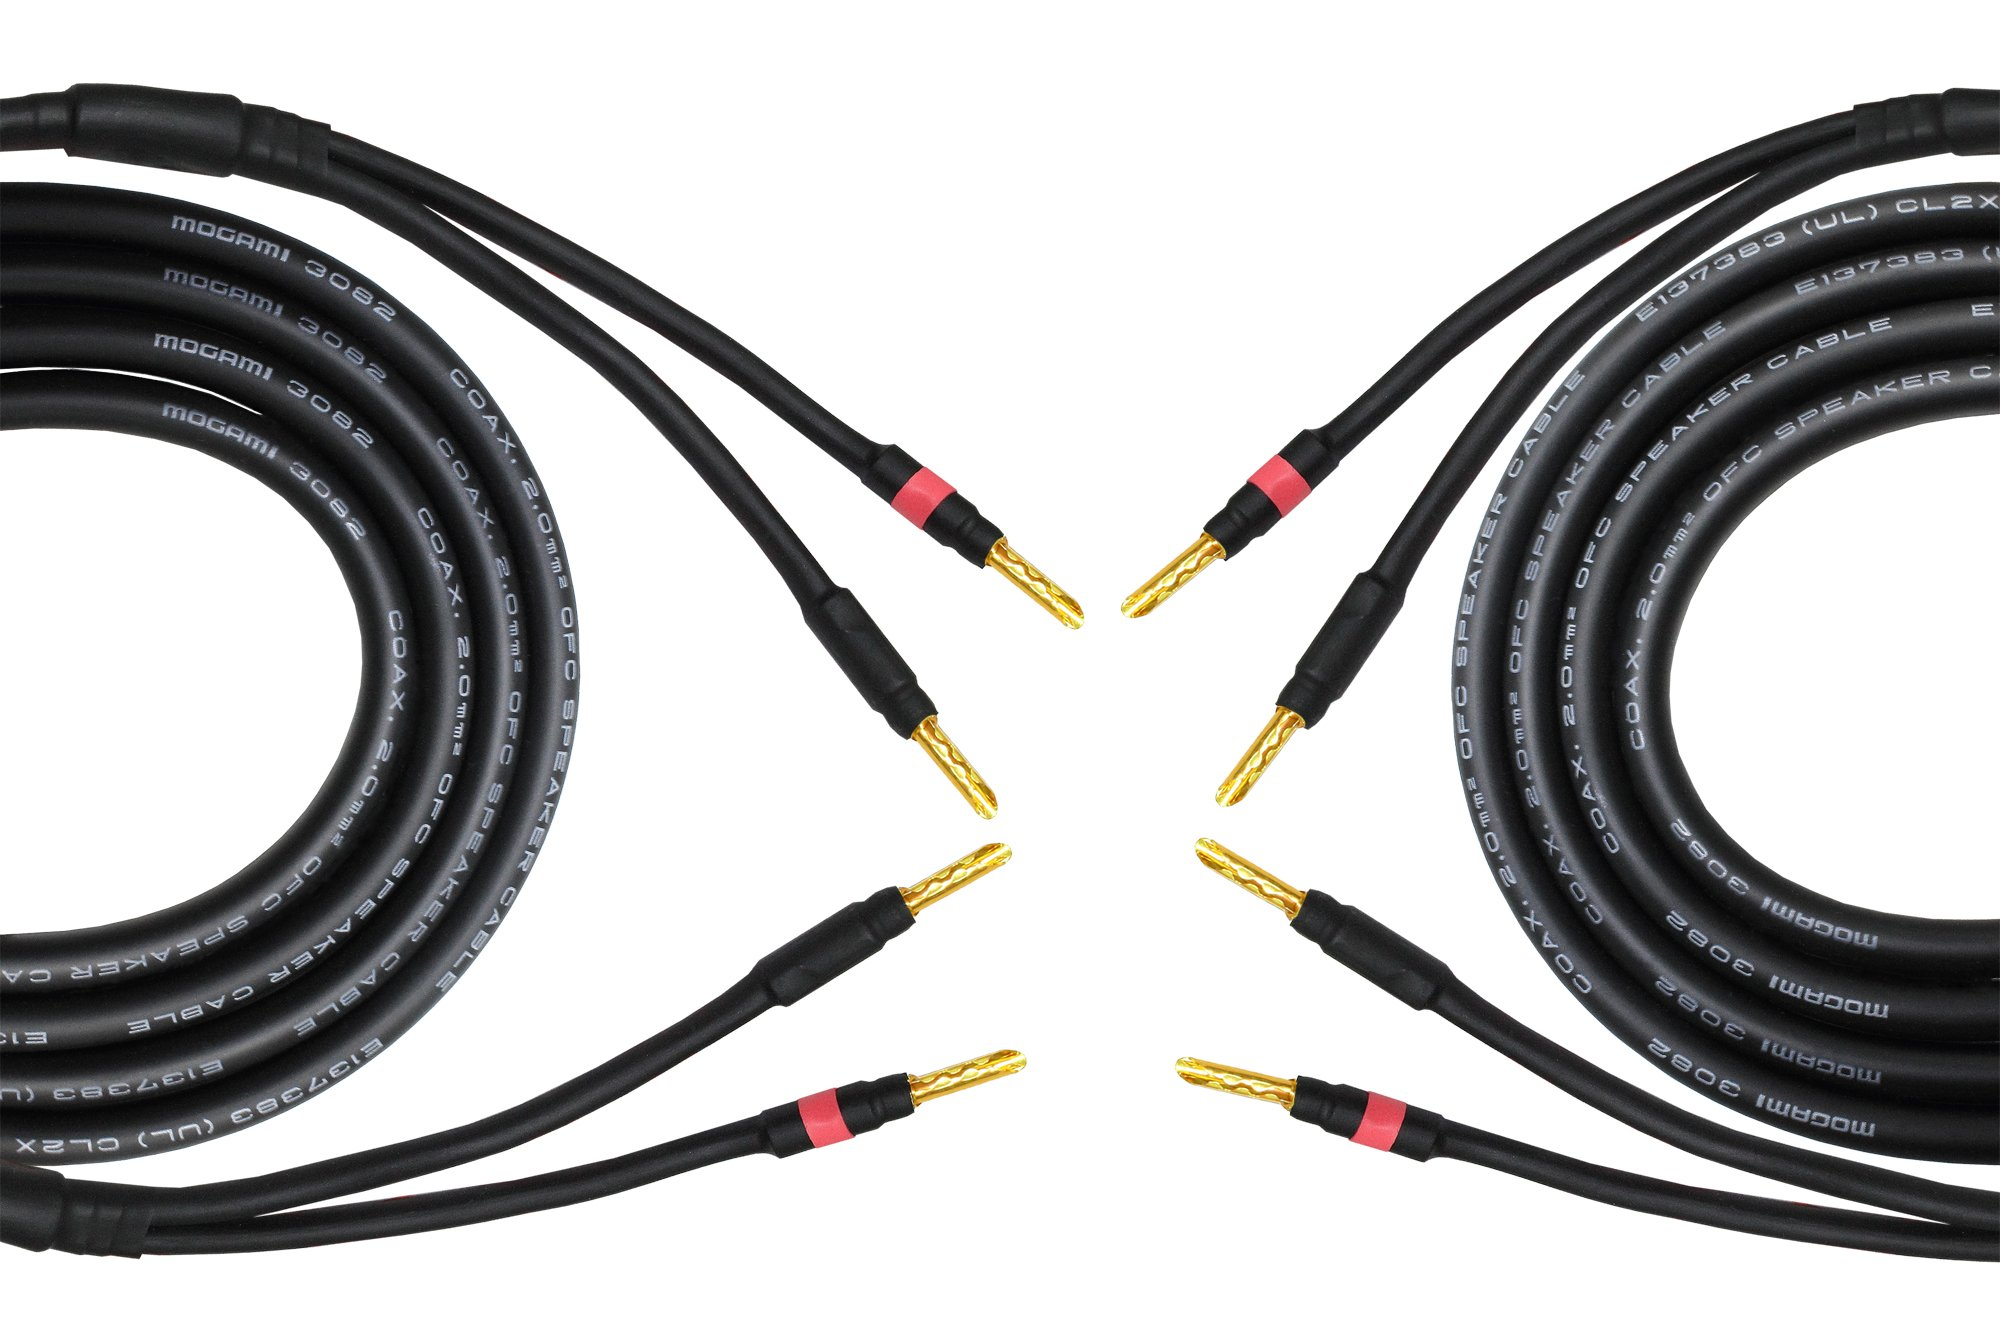 10 Foot - Coaxial Audiophile Speaker Cable Pair Custom Made by WORLDS BEST CABLES - Using Mogami 3082 Wire & Eminence Gold Plated Banana Plugs (2 Plugs on Each end)